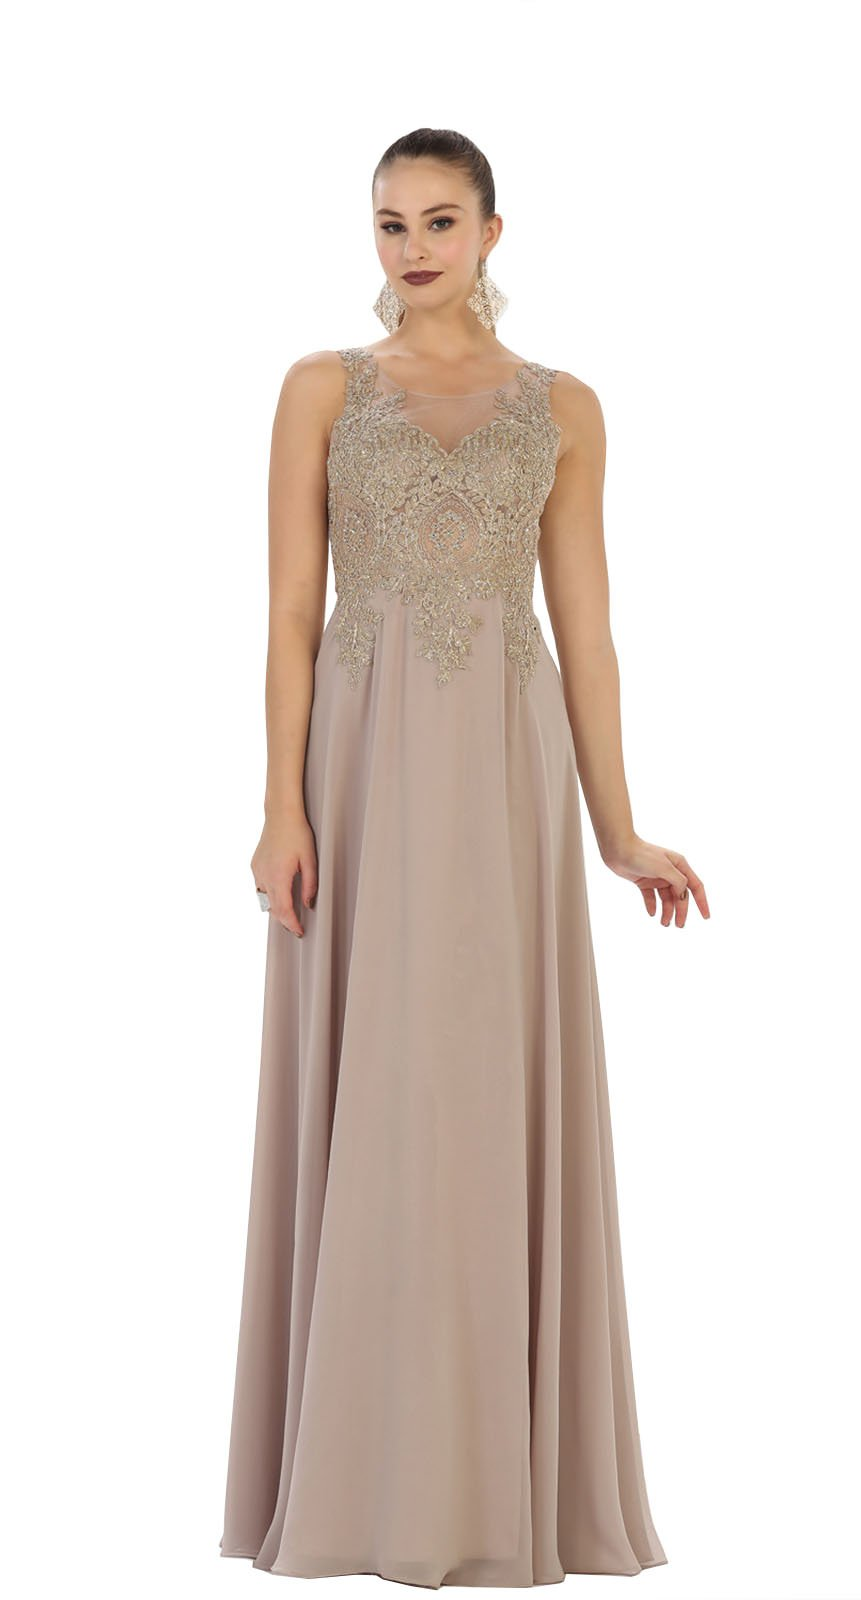 e168ae8f443f May Queen Formal Dress Shops Inc. FDS1432 Special Occasion Long Formal Gown  (10, Mocha)